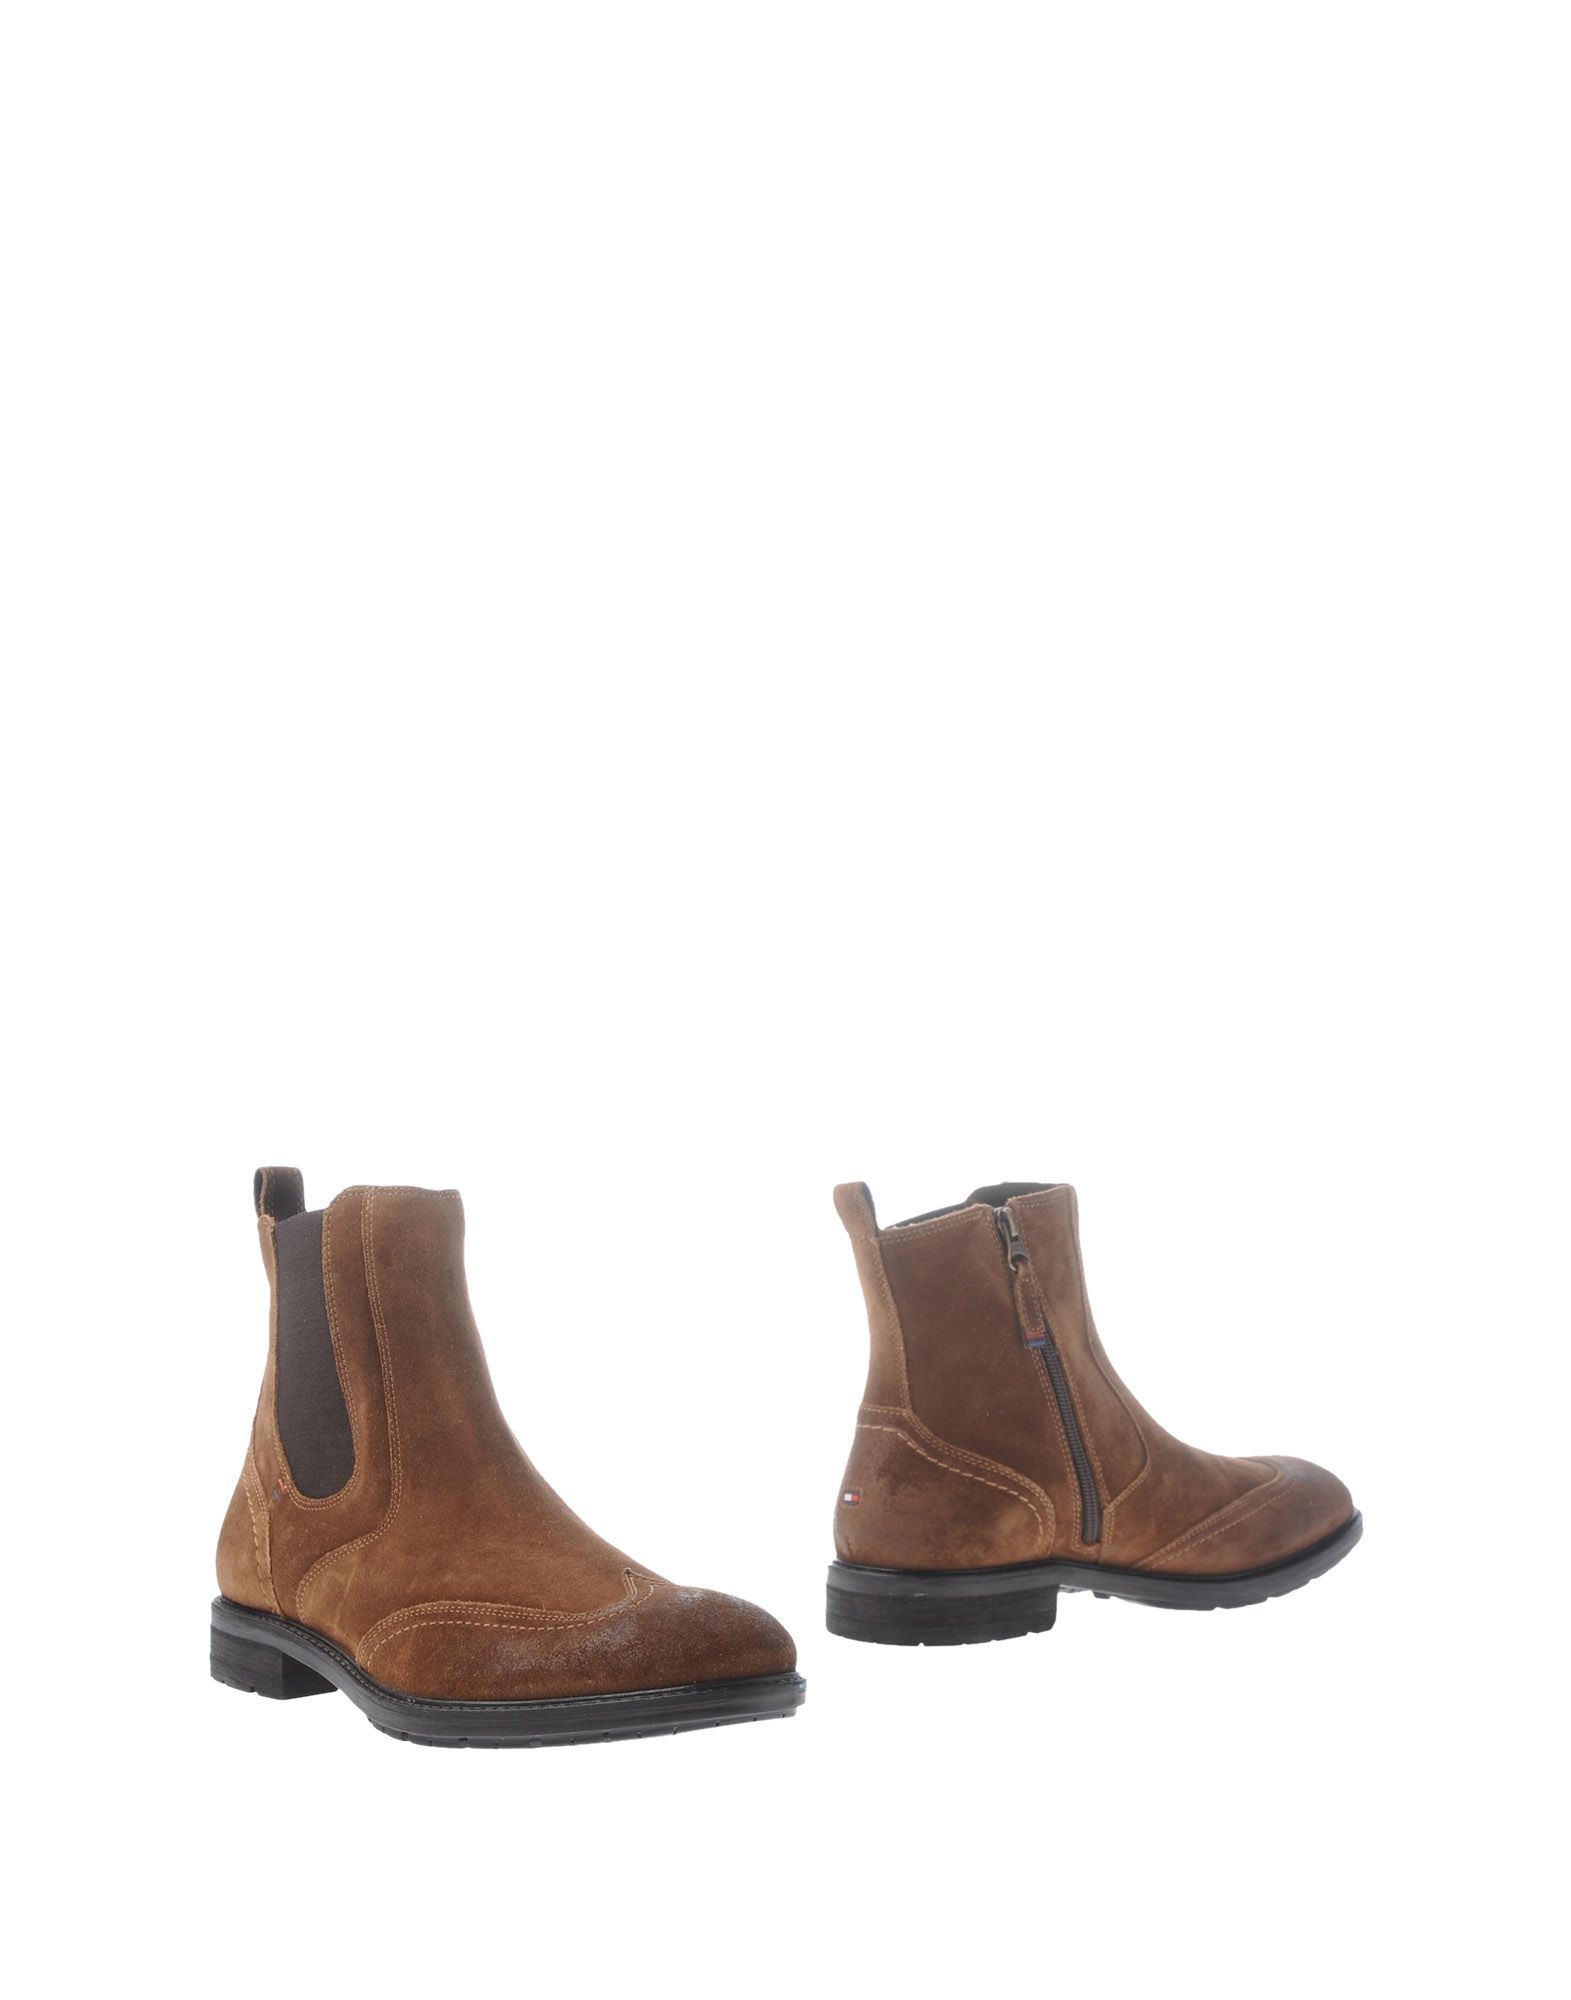 tommy hilfiger ankle boots in brown for men lyst. Black Bedroom Furniture Sets. Home Design Ideas